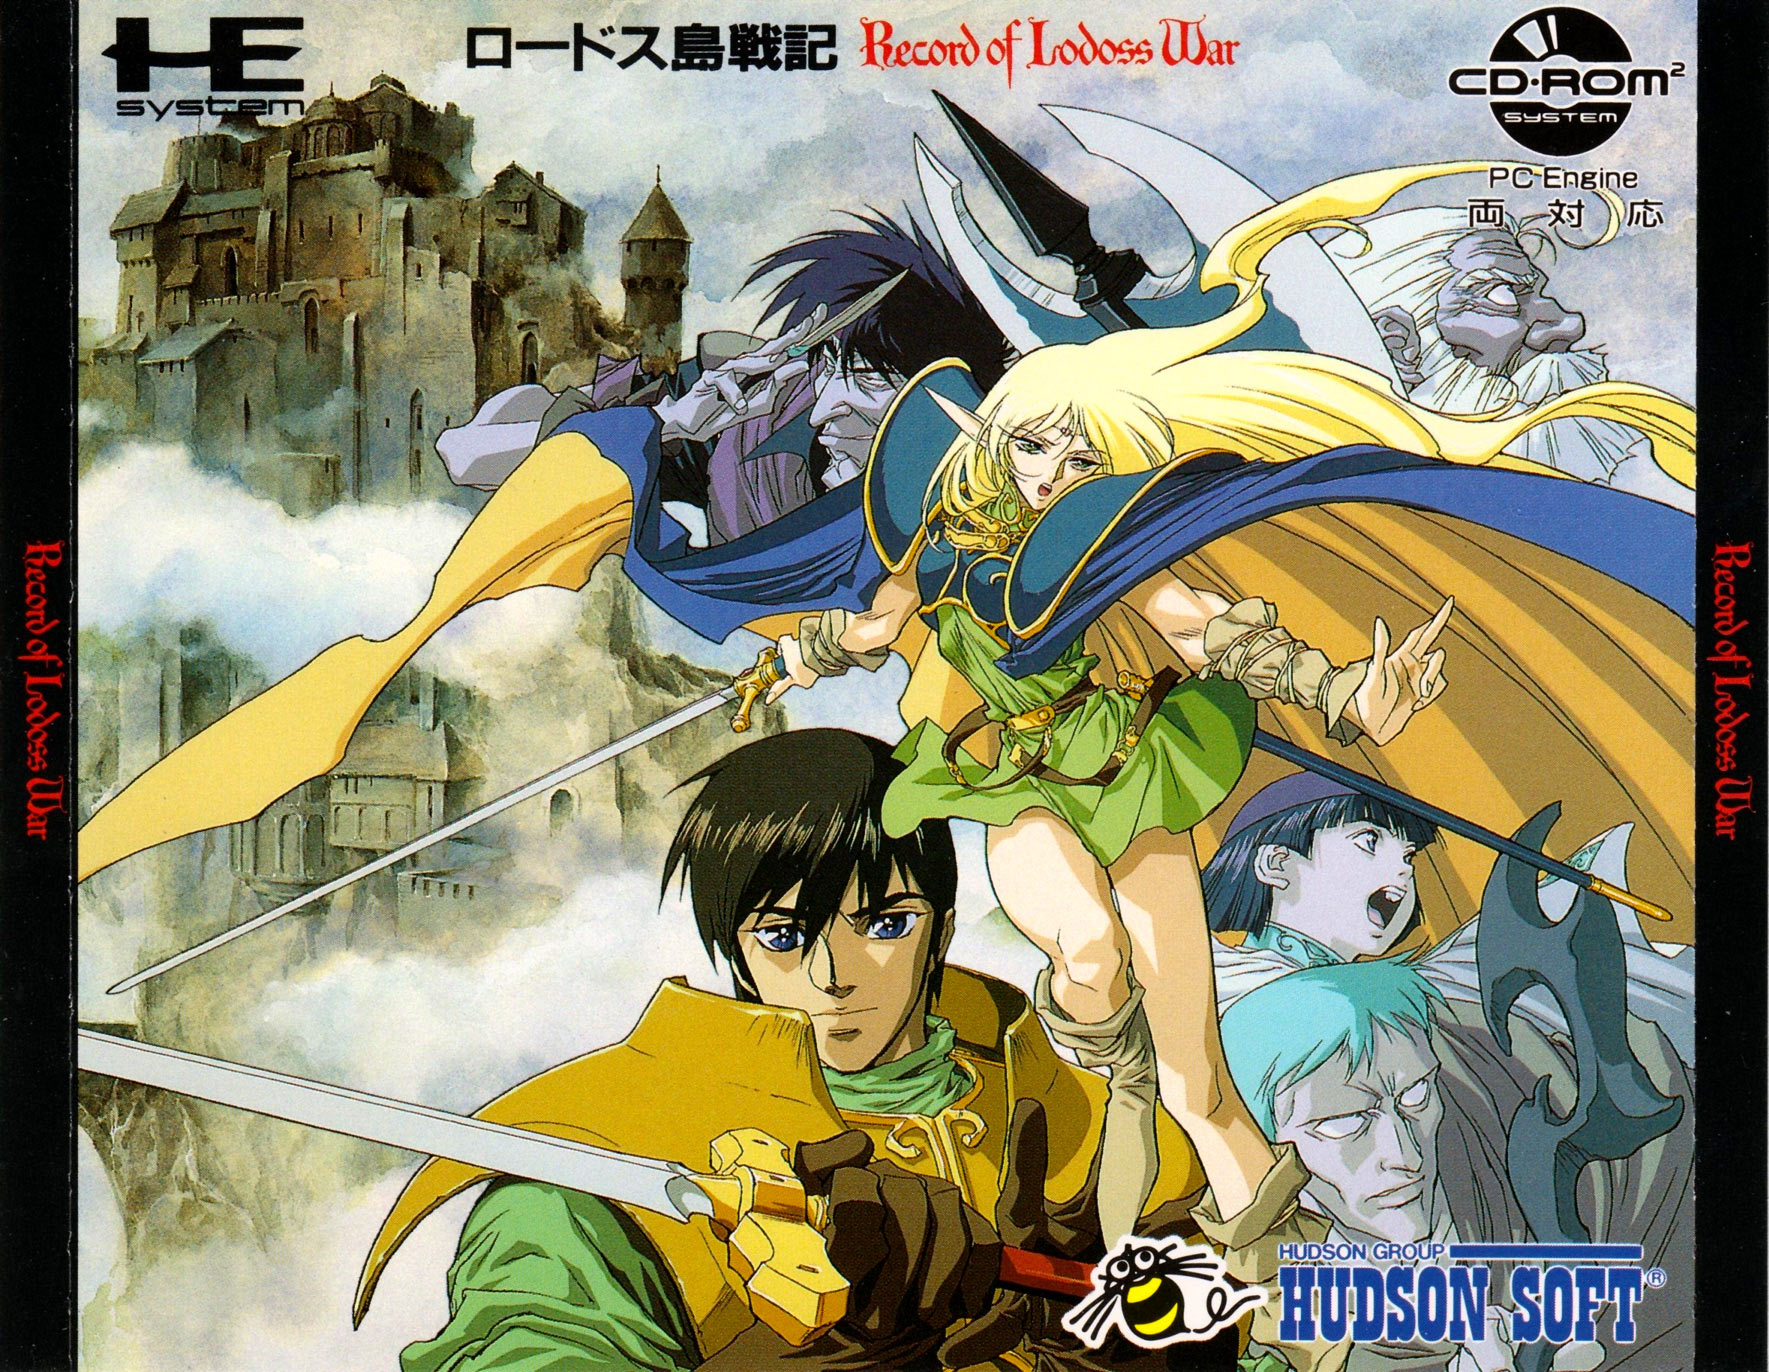 Record of Lodoss War - The PC Engine Software Bible